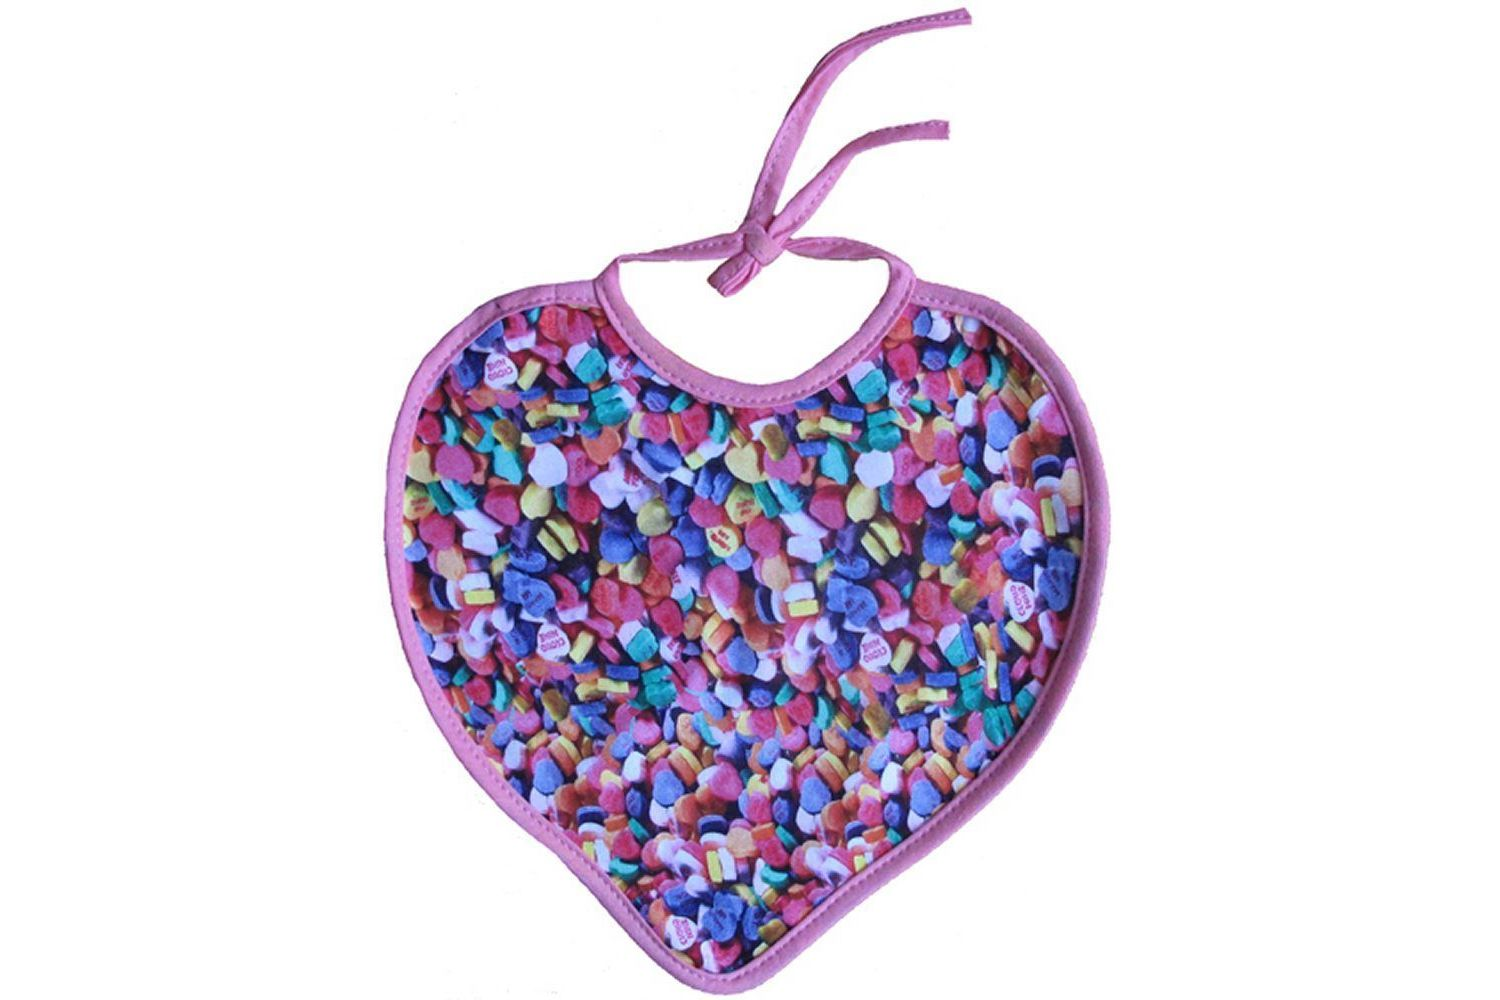 Xplorys Sweetheart Baby Bib - Choose your favourite sweets!!! - Candy Hearts